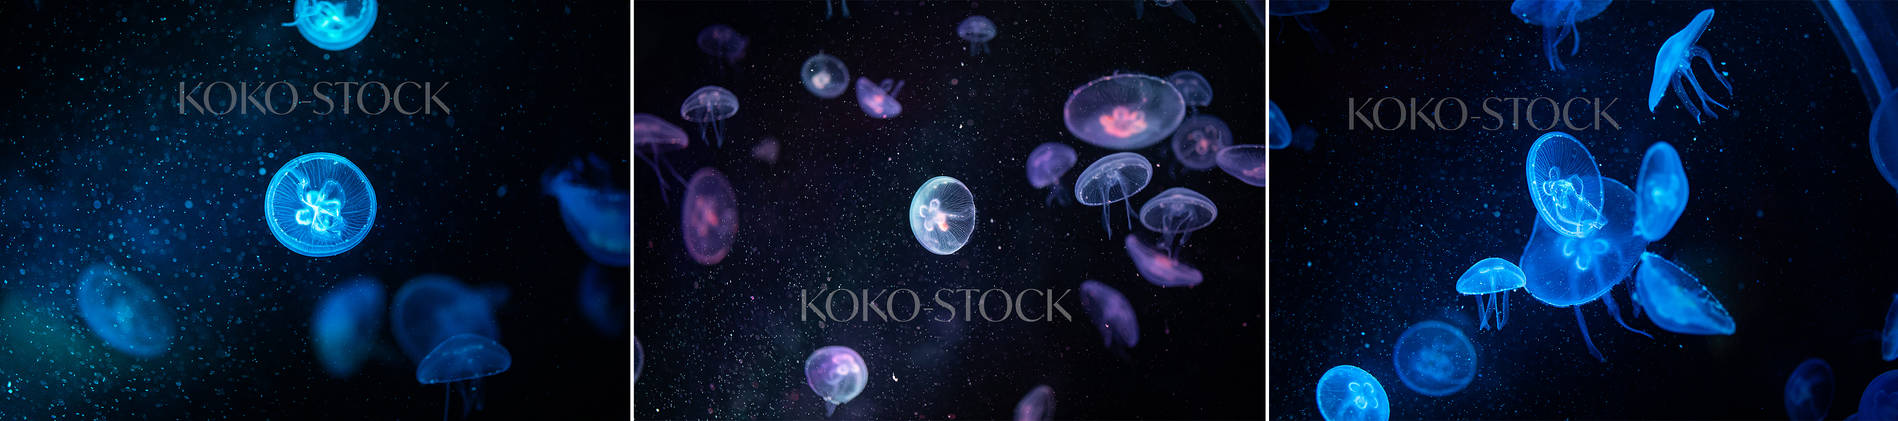 Jellyfish stock hd premium